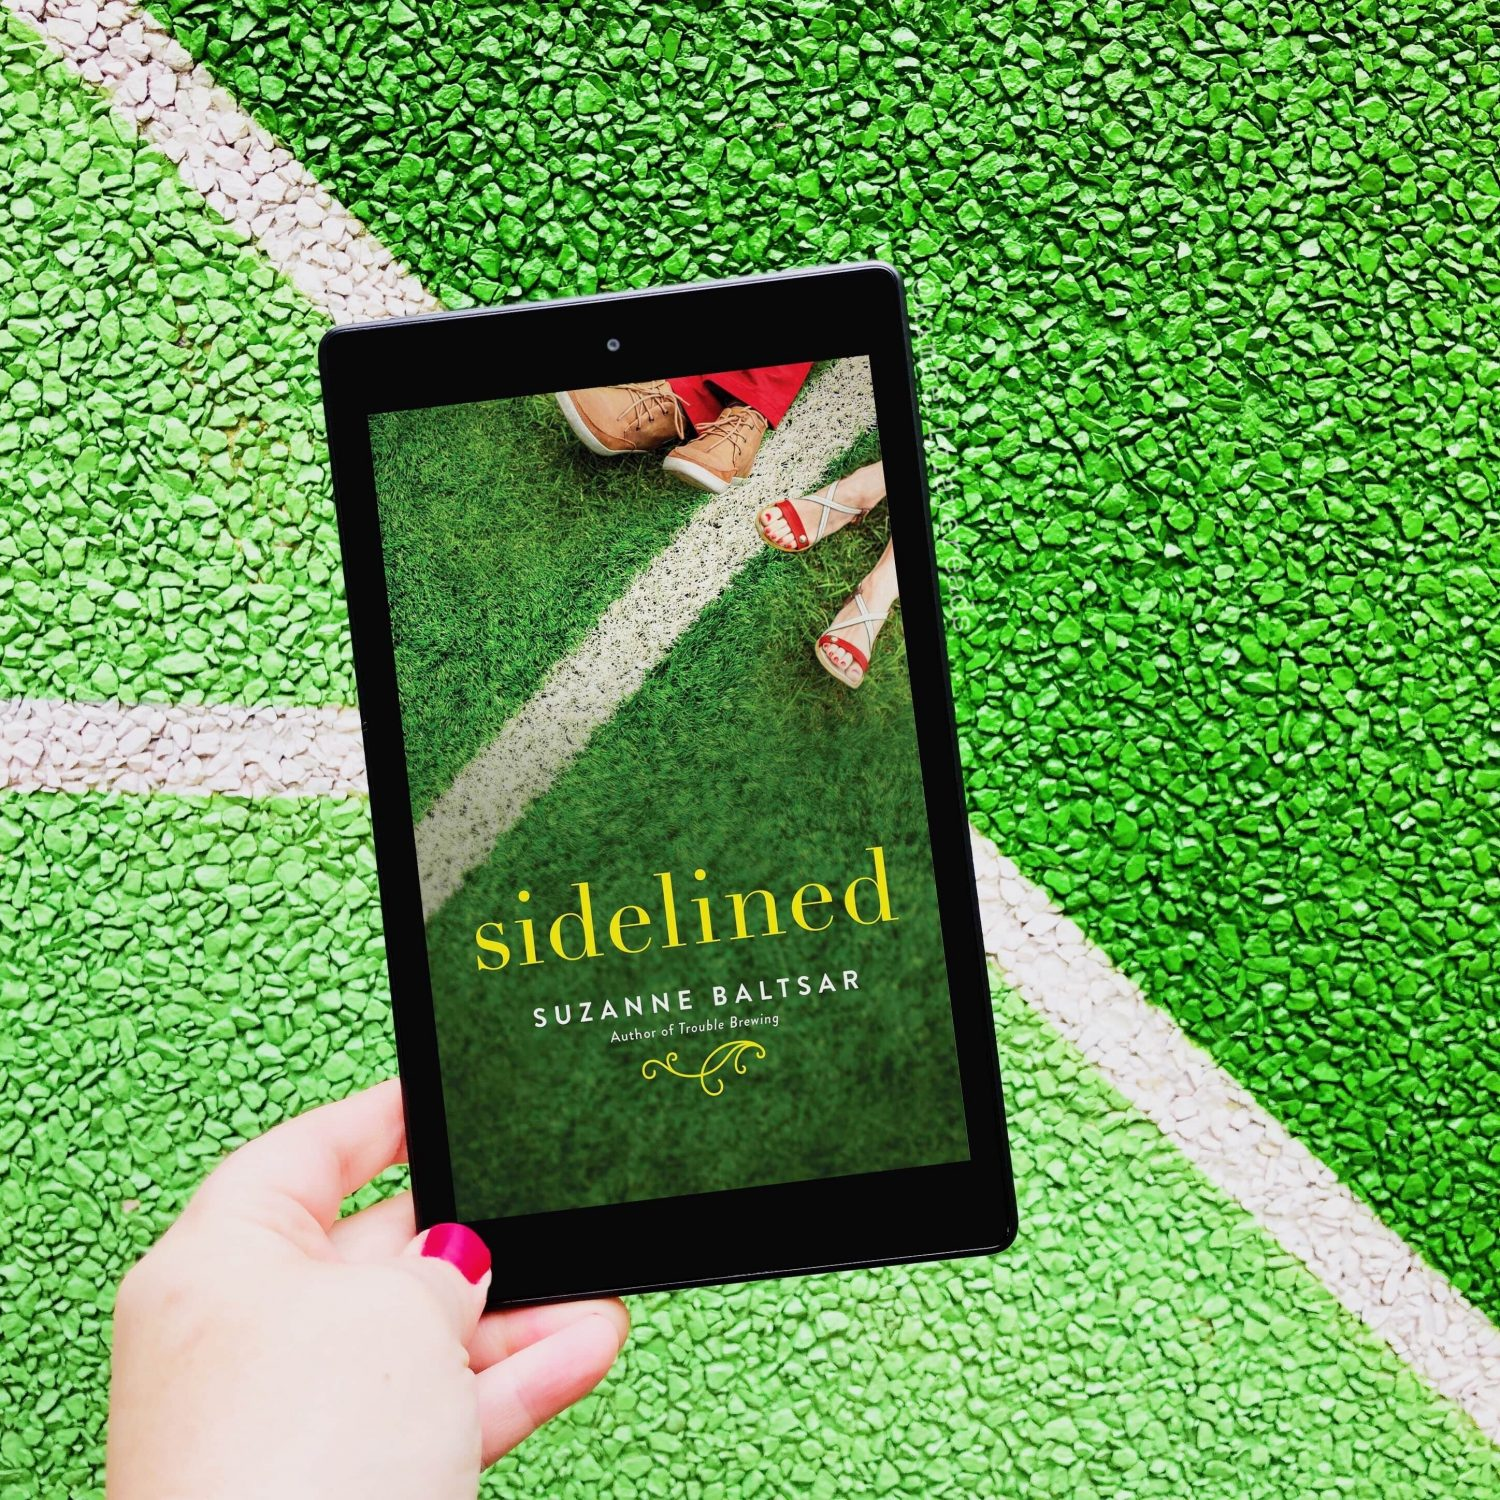 In Review: Sidelined by Suzanne Baltsar